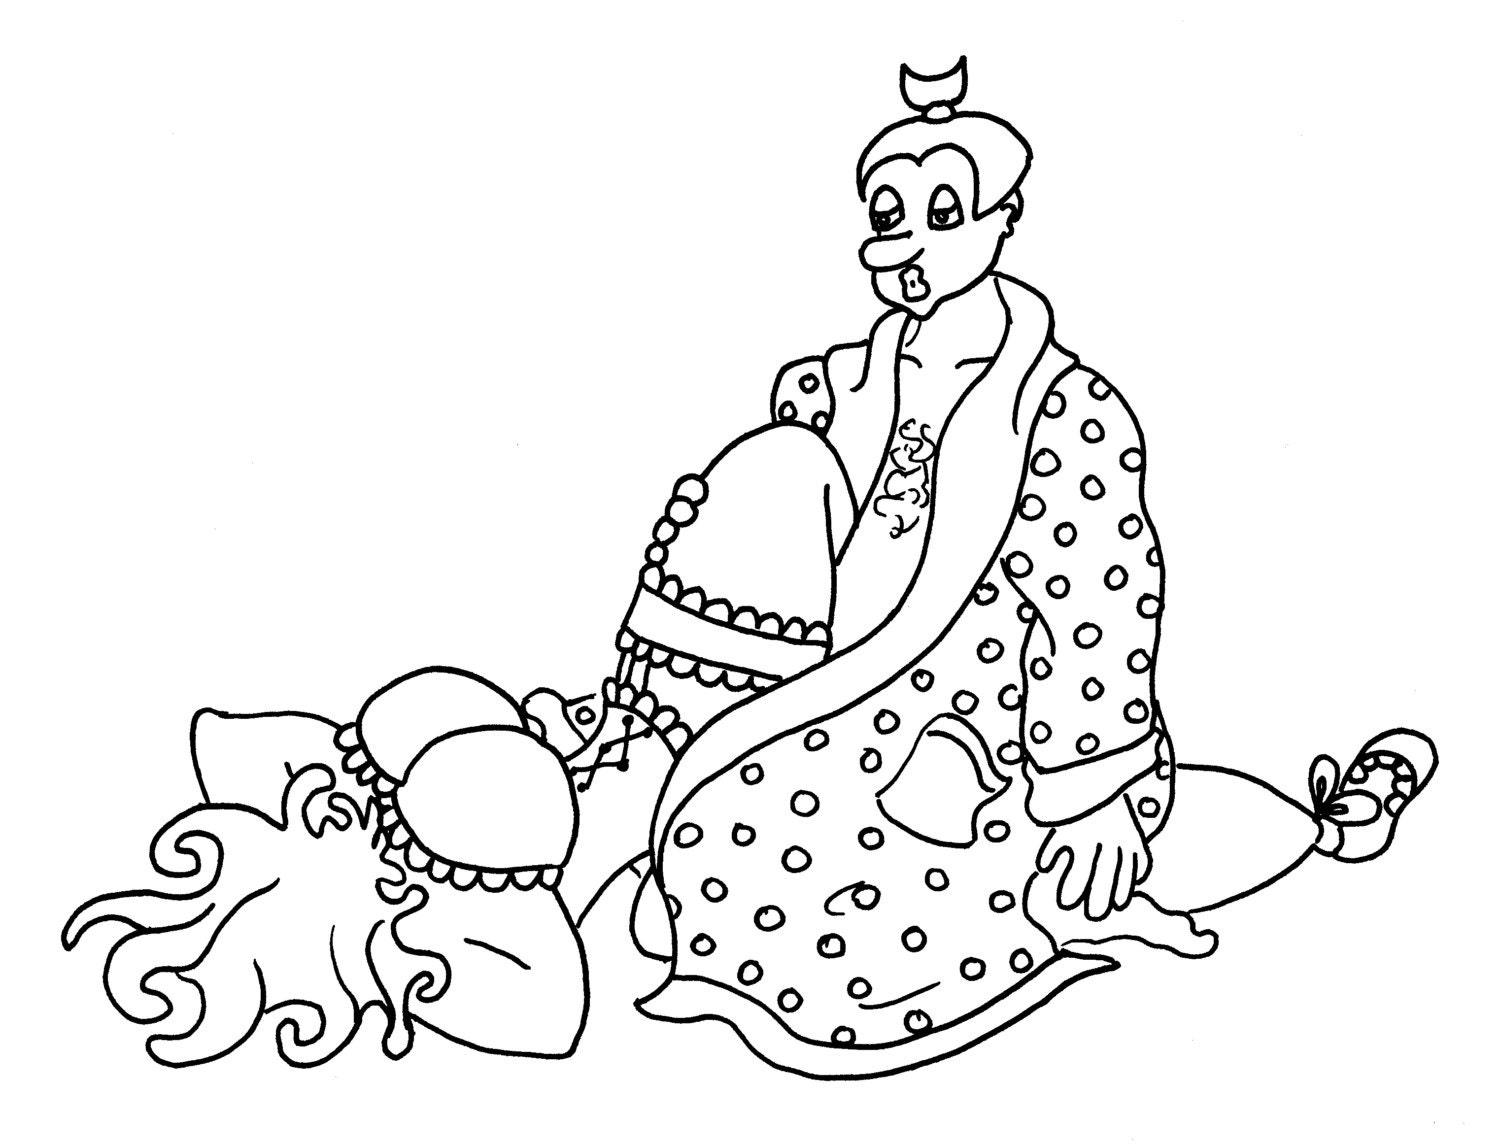 The Star Funny Sexy Coloring Pages for Adults from the